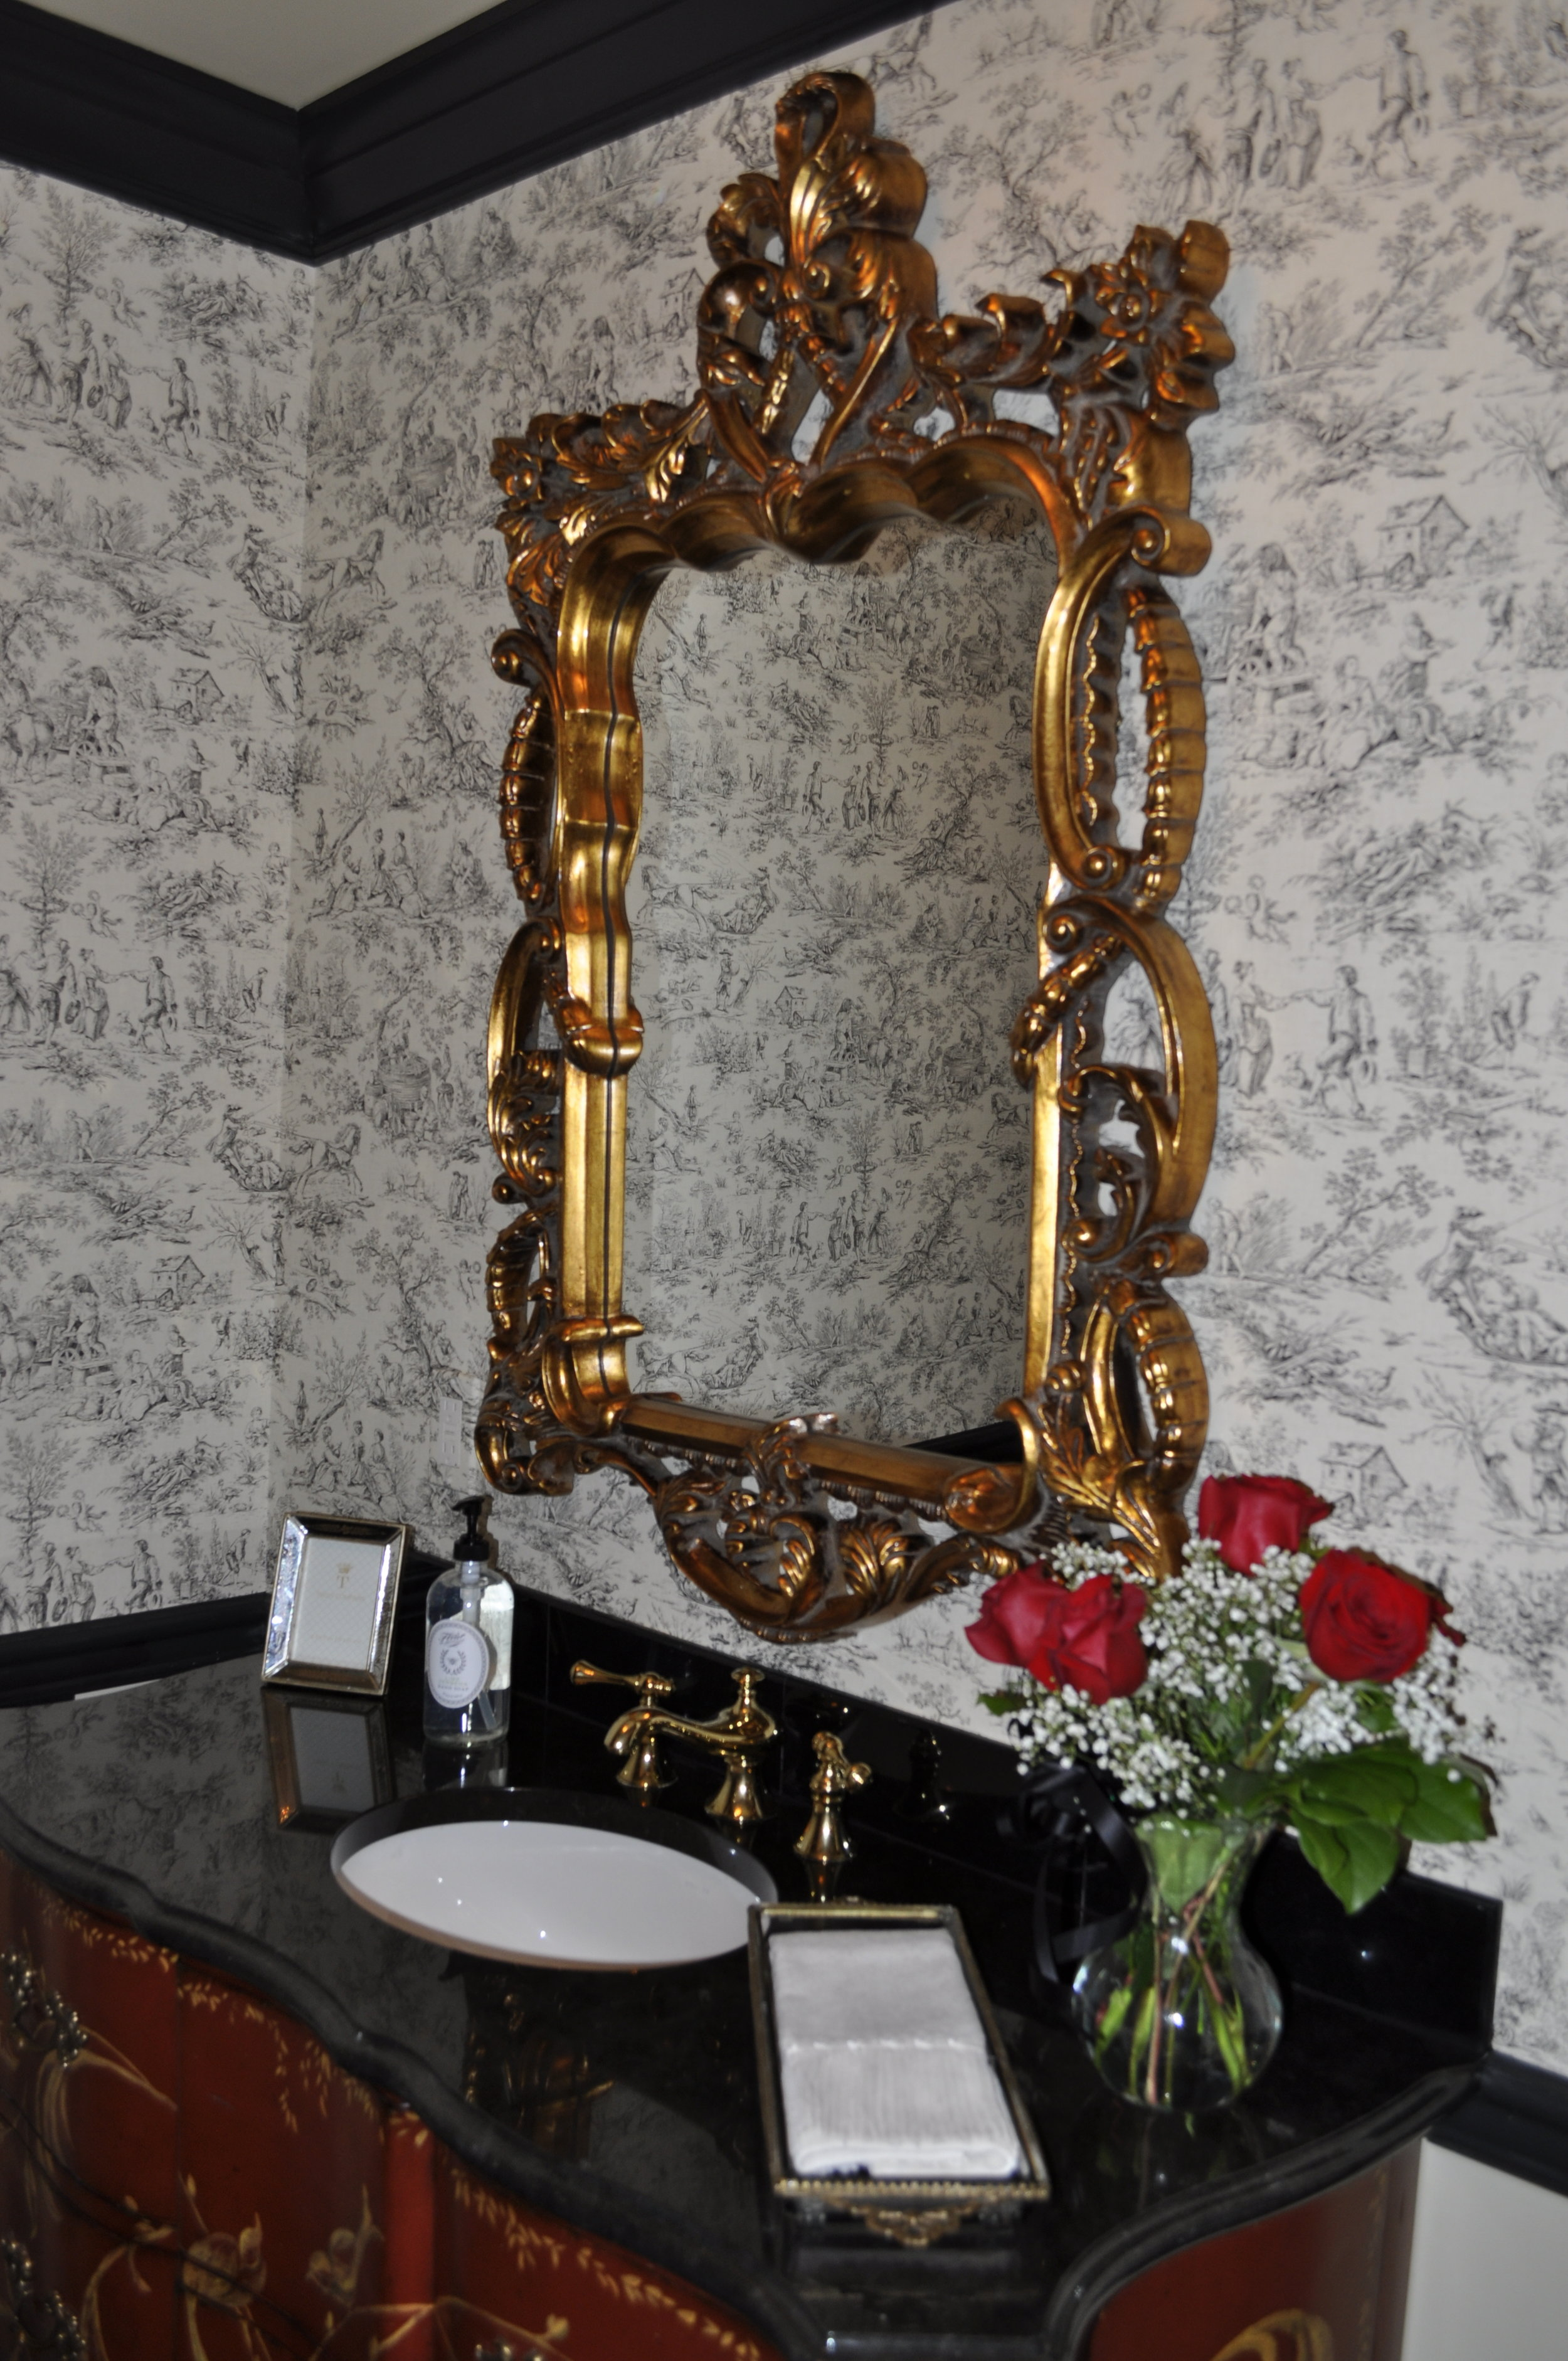 A close up of the beautifully appointed vanity top. The fresh flowers add another pop of red to the room.